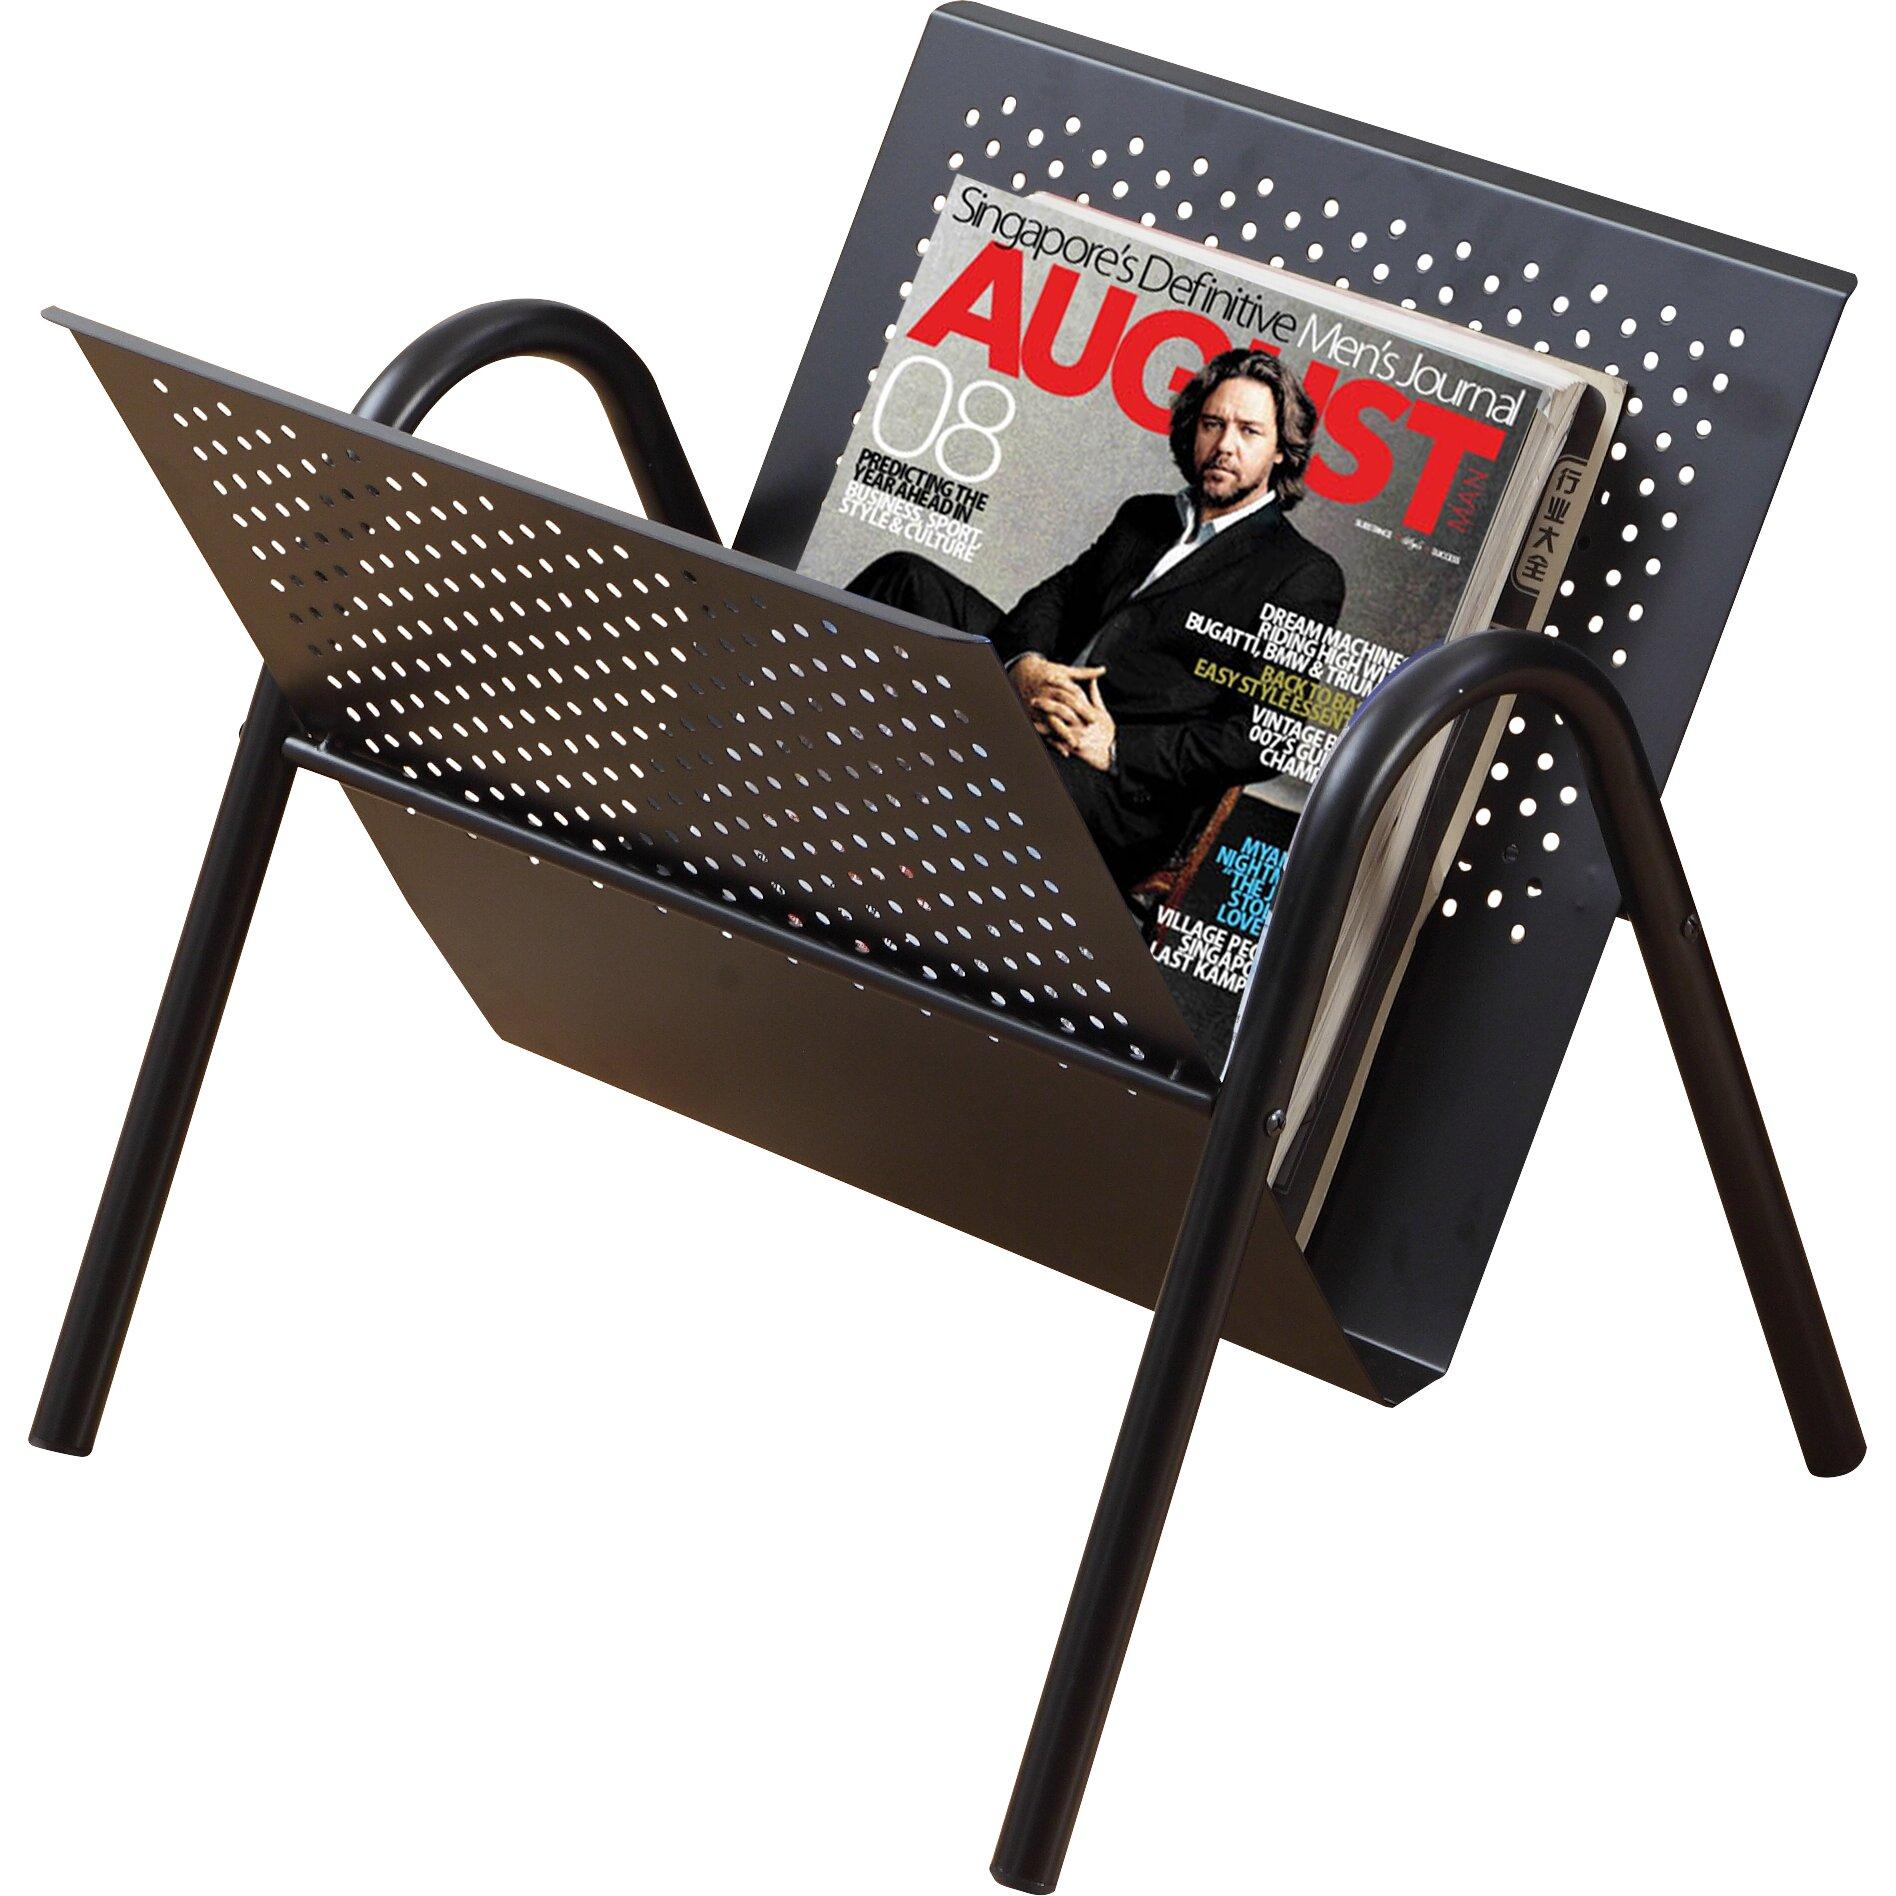 Monarch specialties inc magazine rack reviews wayfair for Magazine racks for home